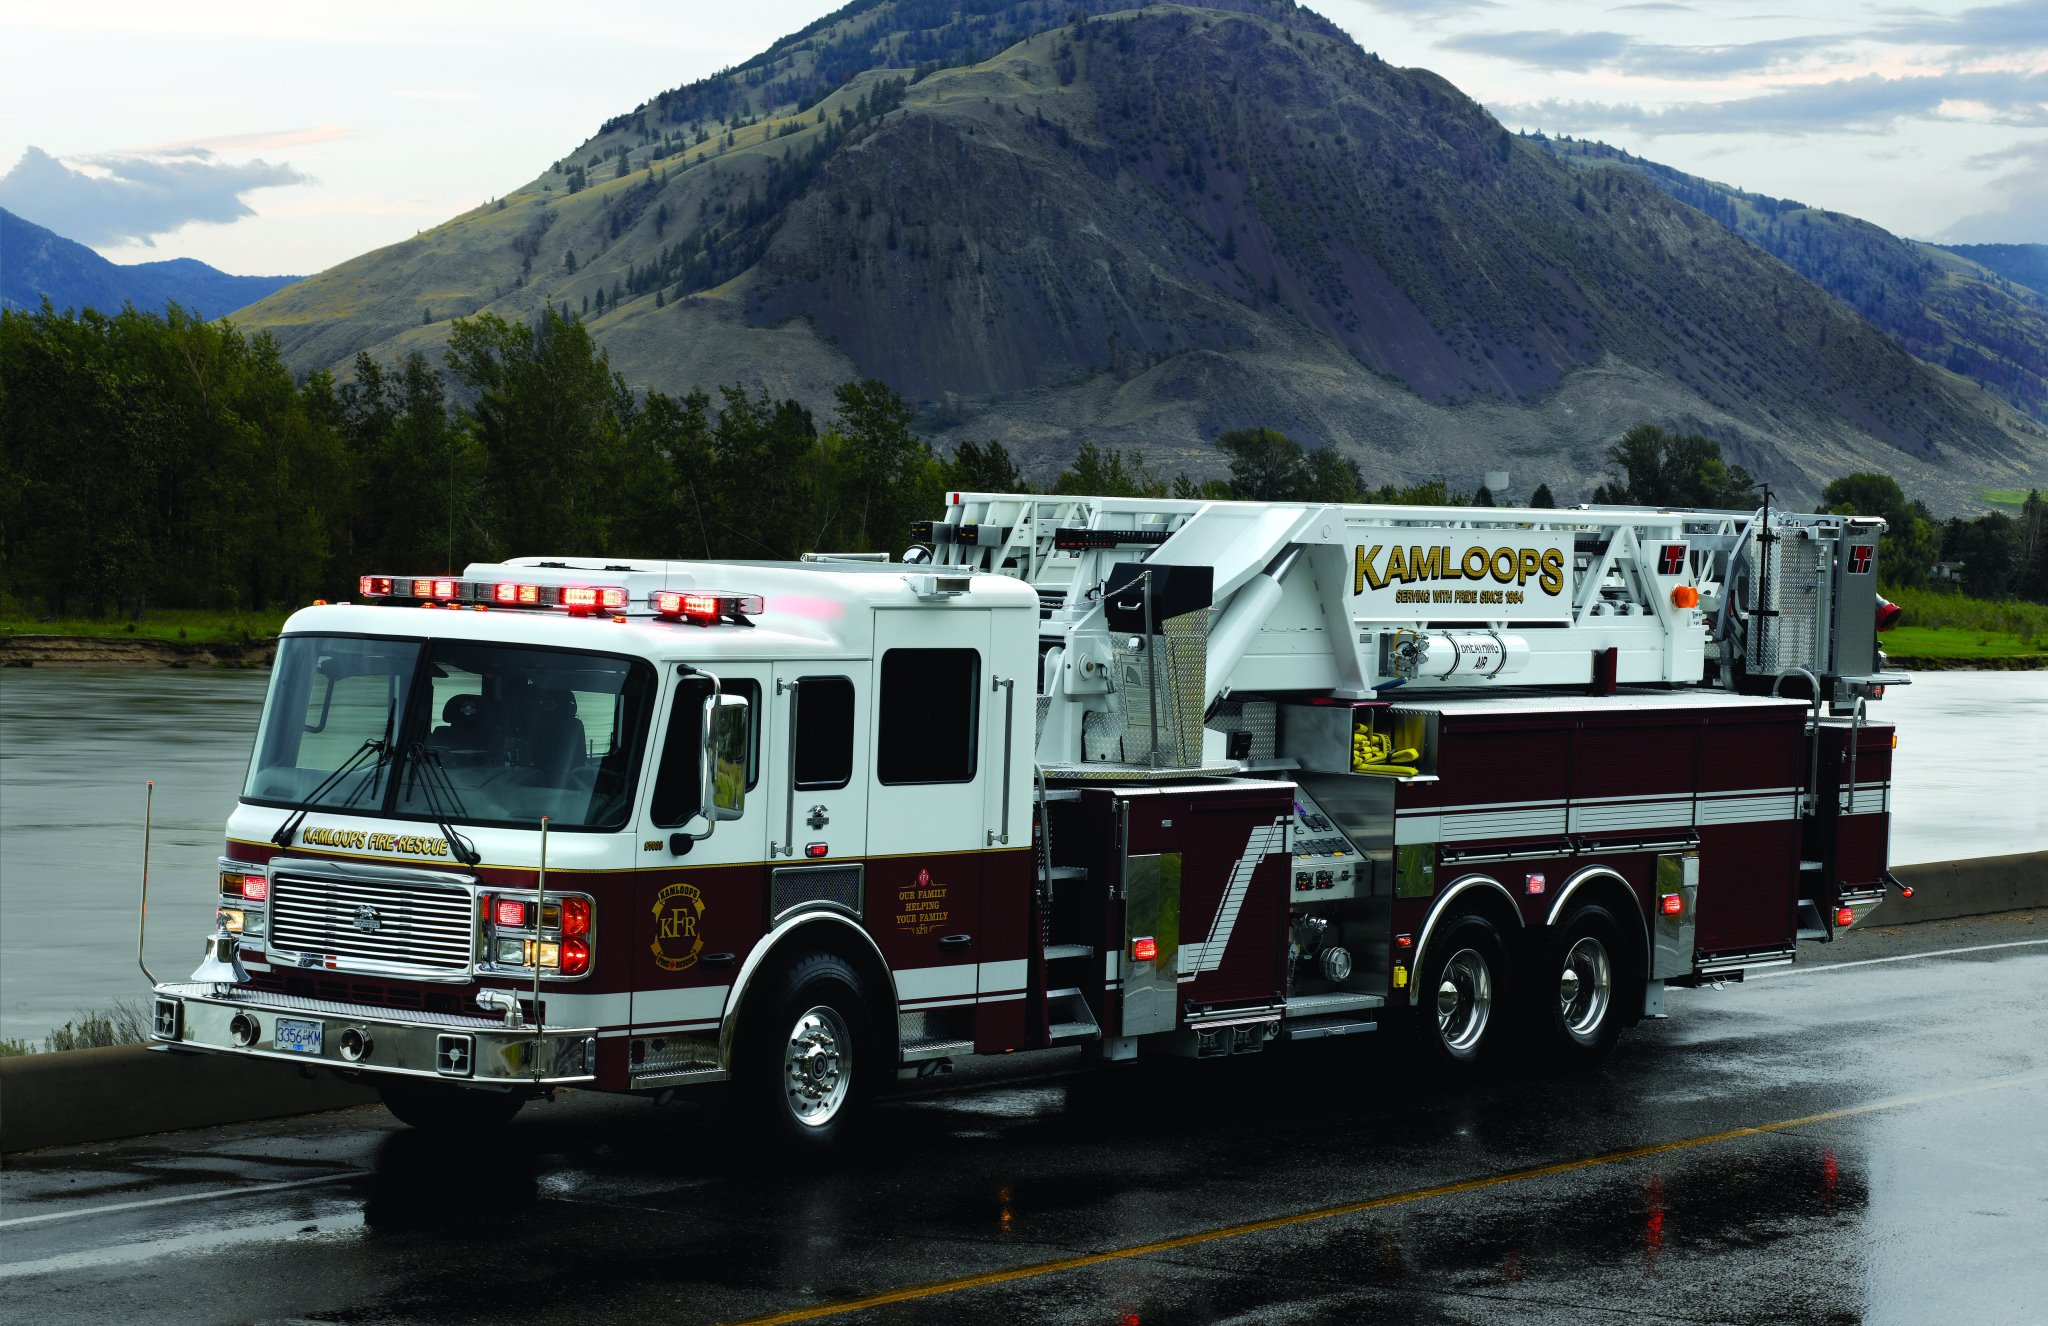 Fewer medical calls for fire department this year